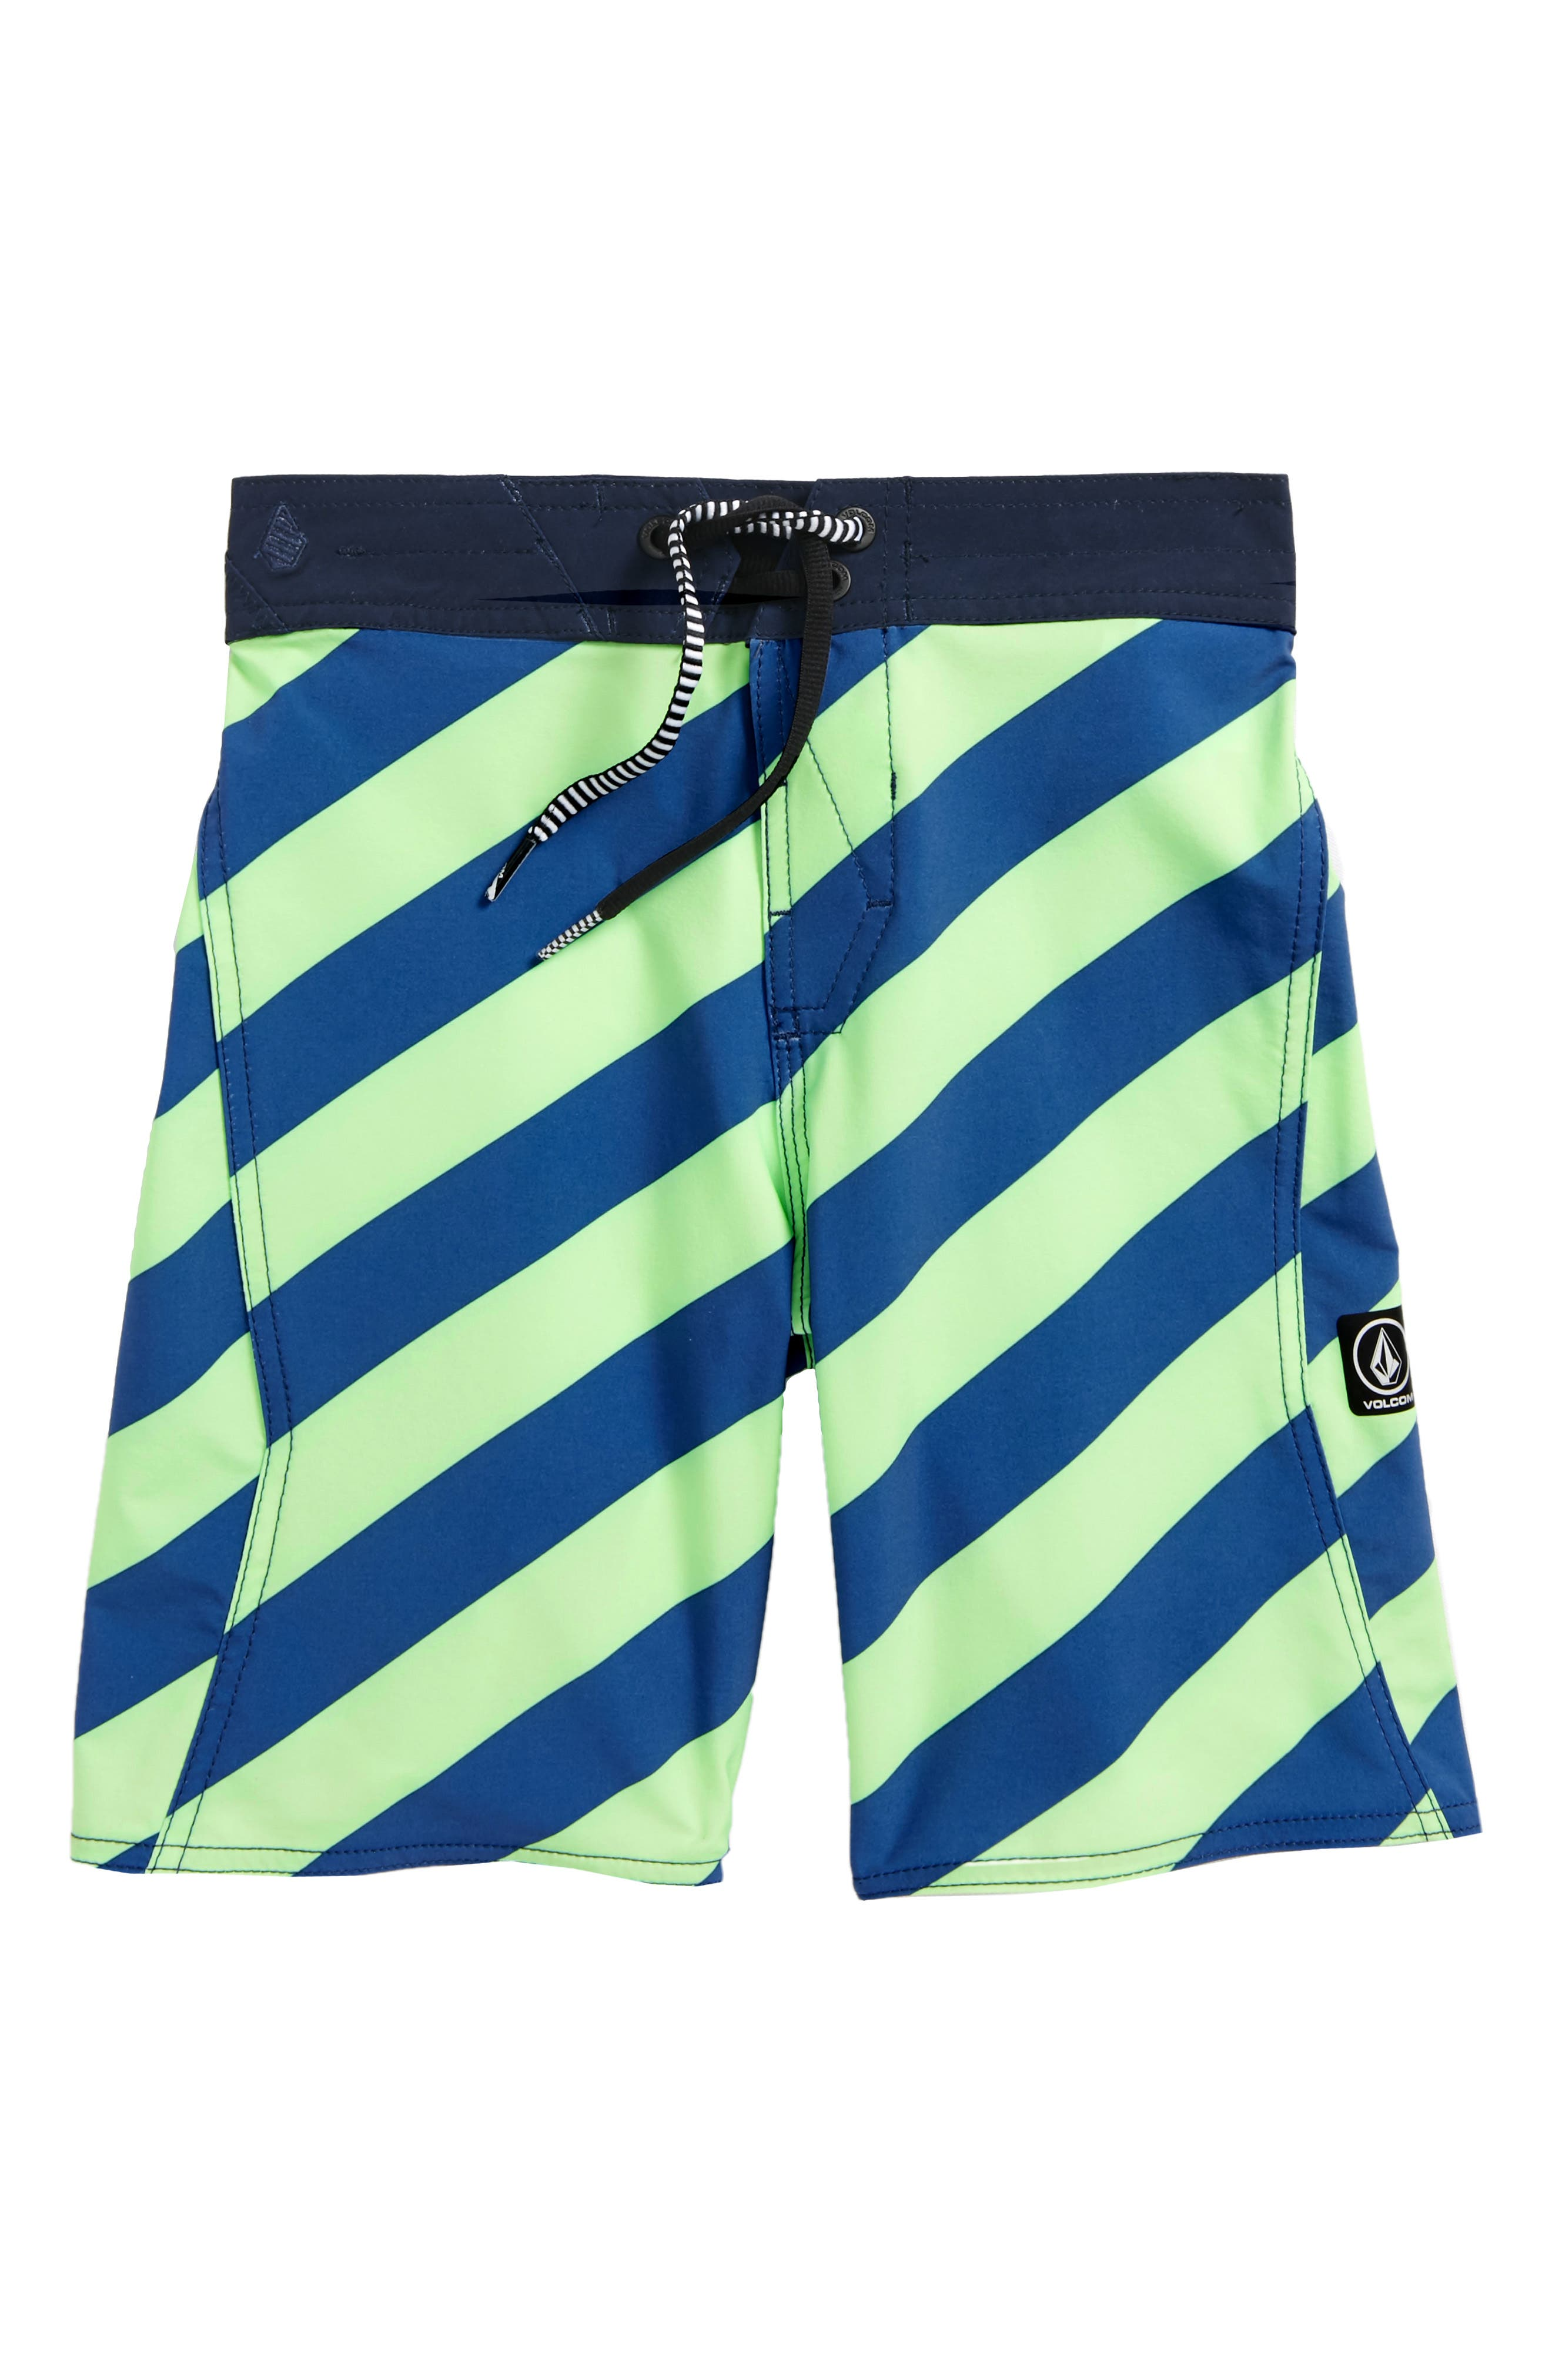 Stripey Swim Trunks,                             Main thumbnail 1, color,                             Strobe Green